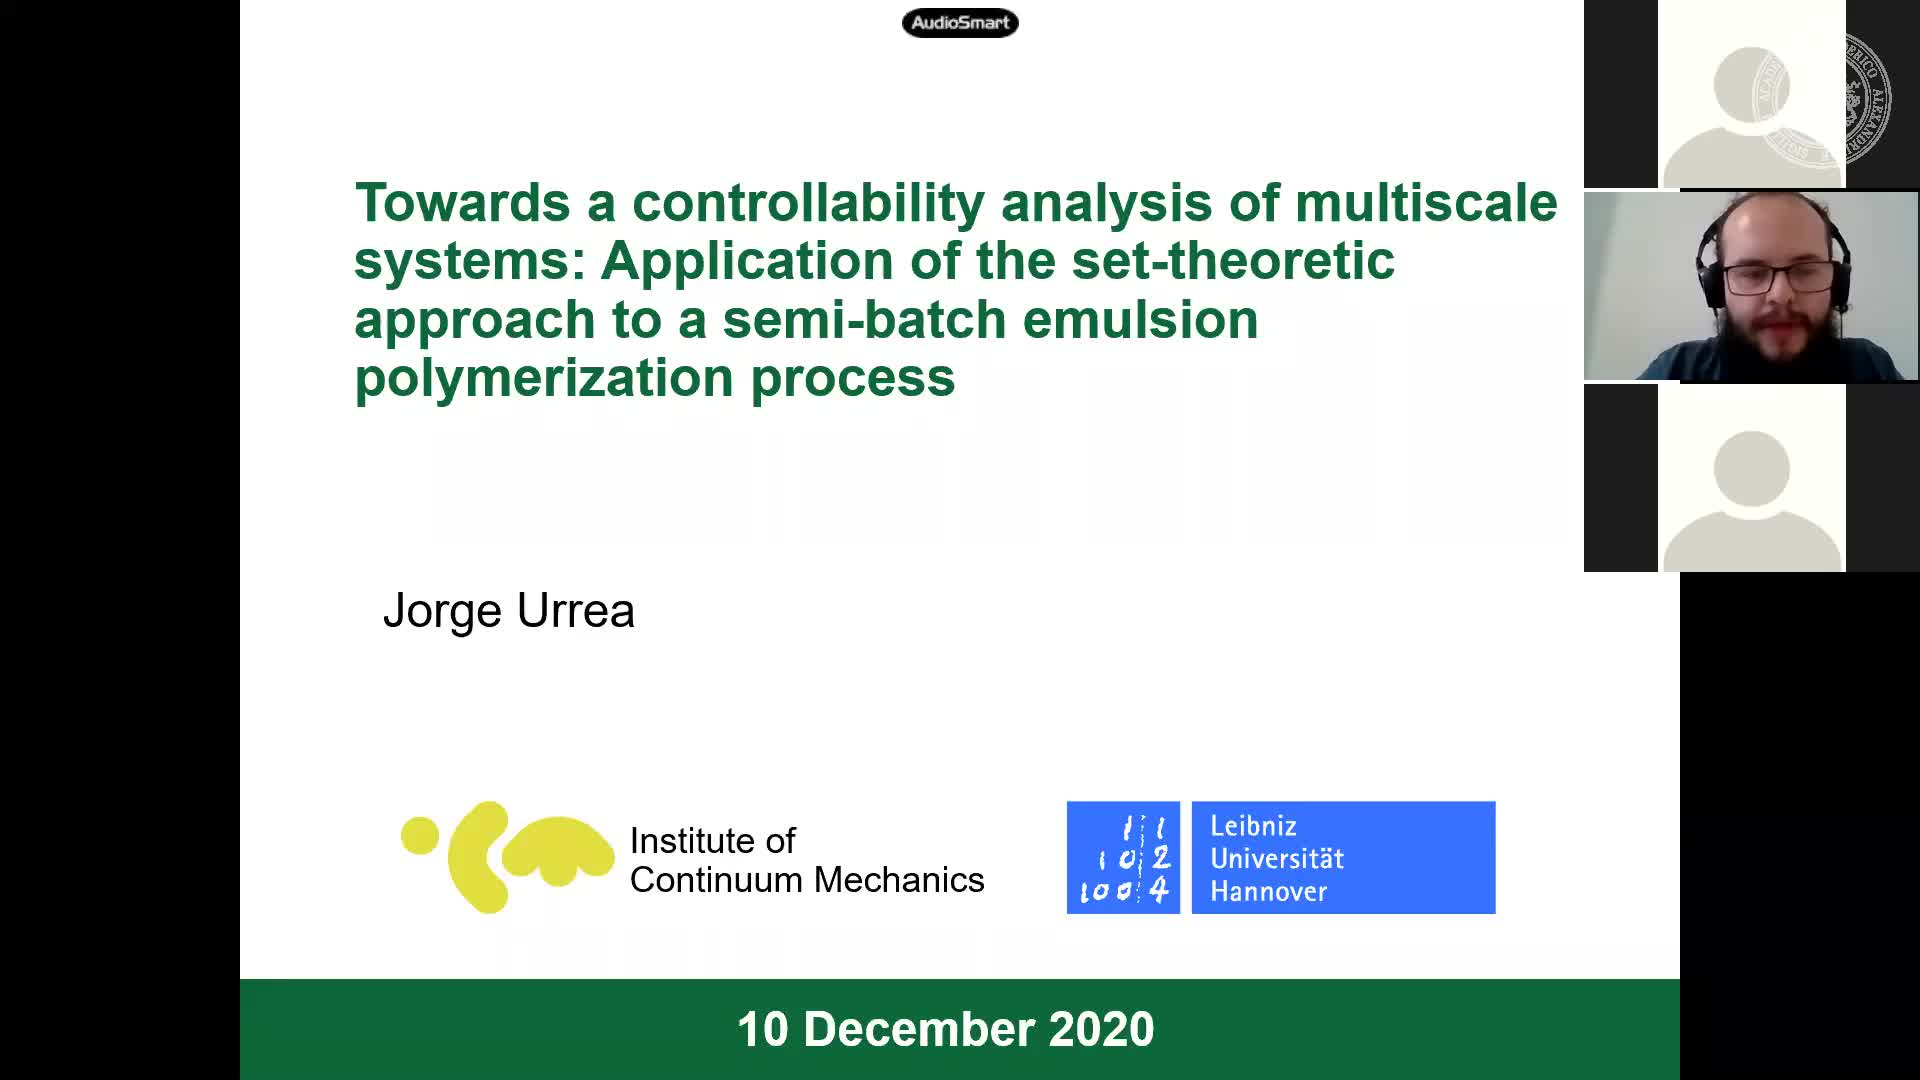 Towards a controllability analysis of multiscale systems: Application of the set-theoretic approach to a semi-batch emulsion polymerization process (Jorge Urrea, Leibniz University Hannover and Universidad de Antioquia) preview image